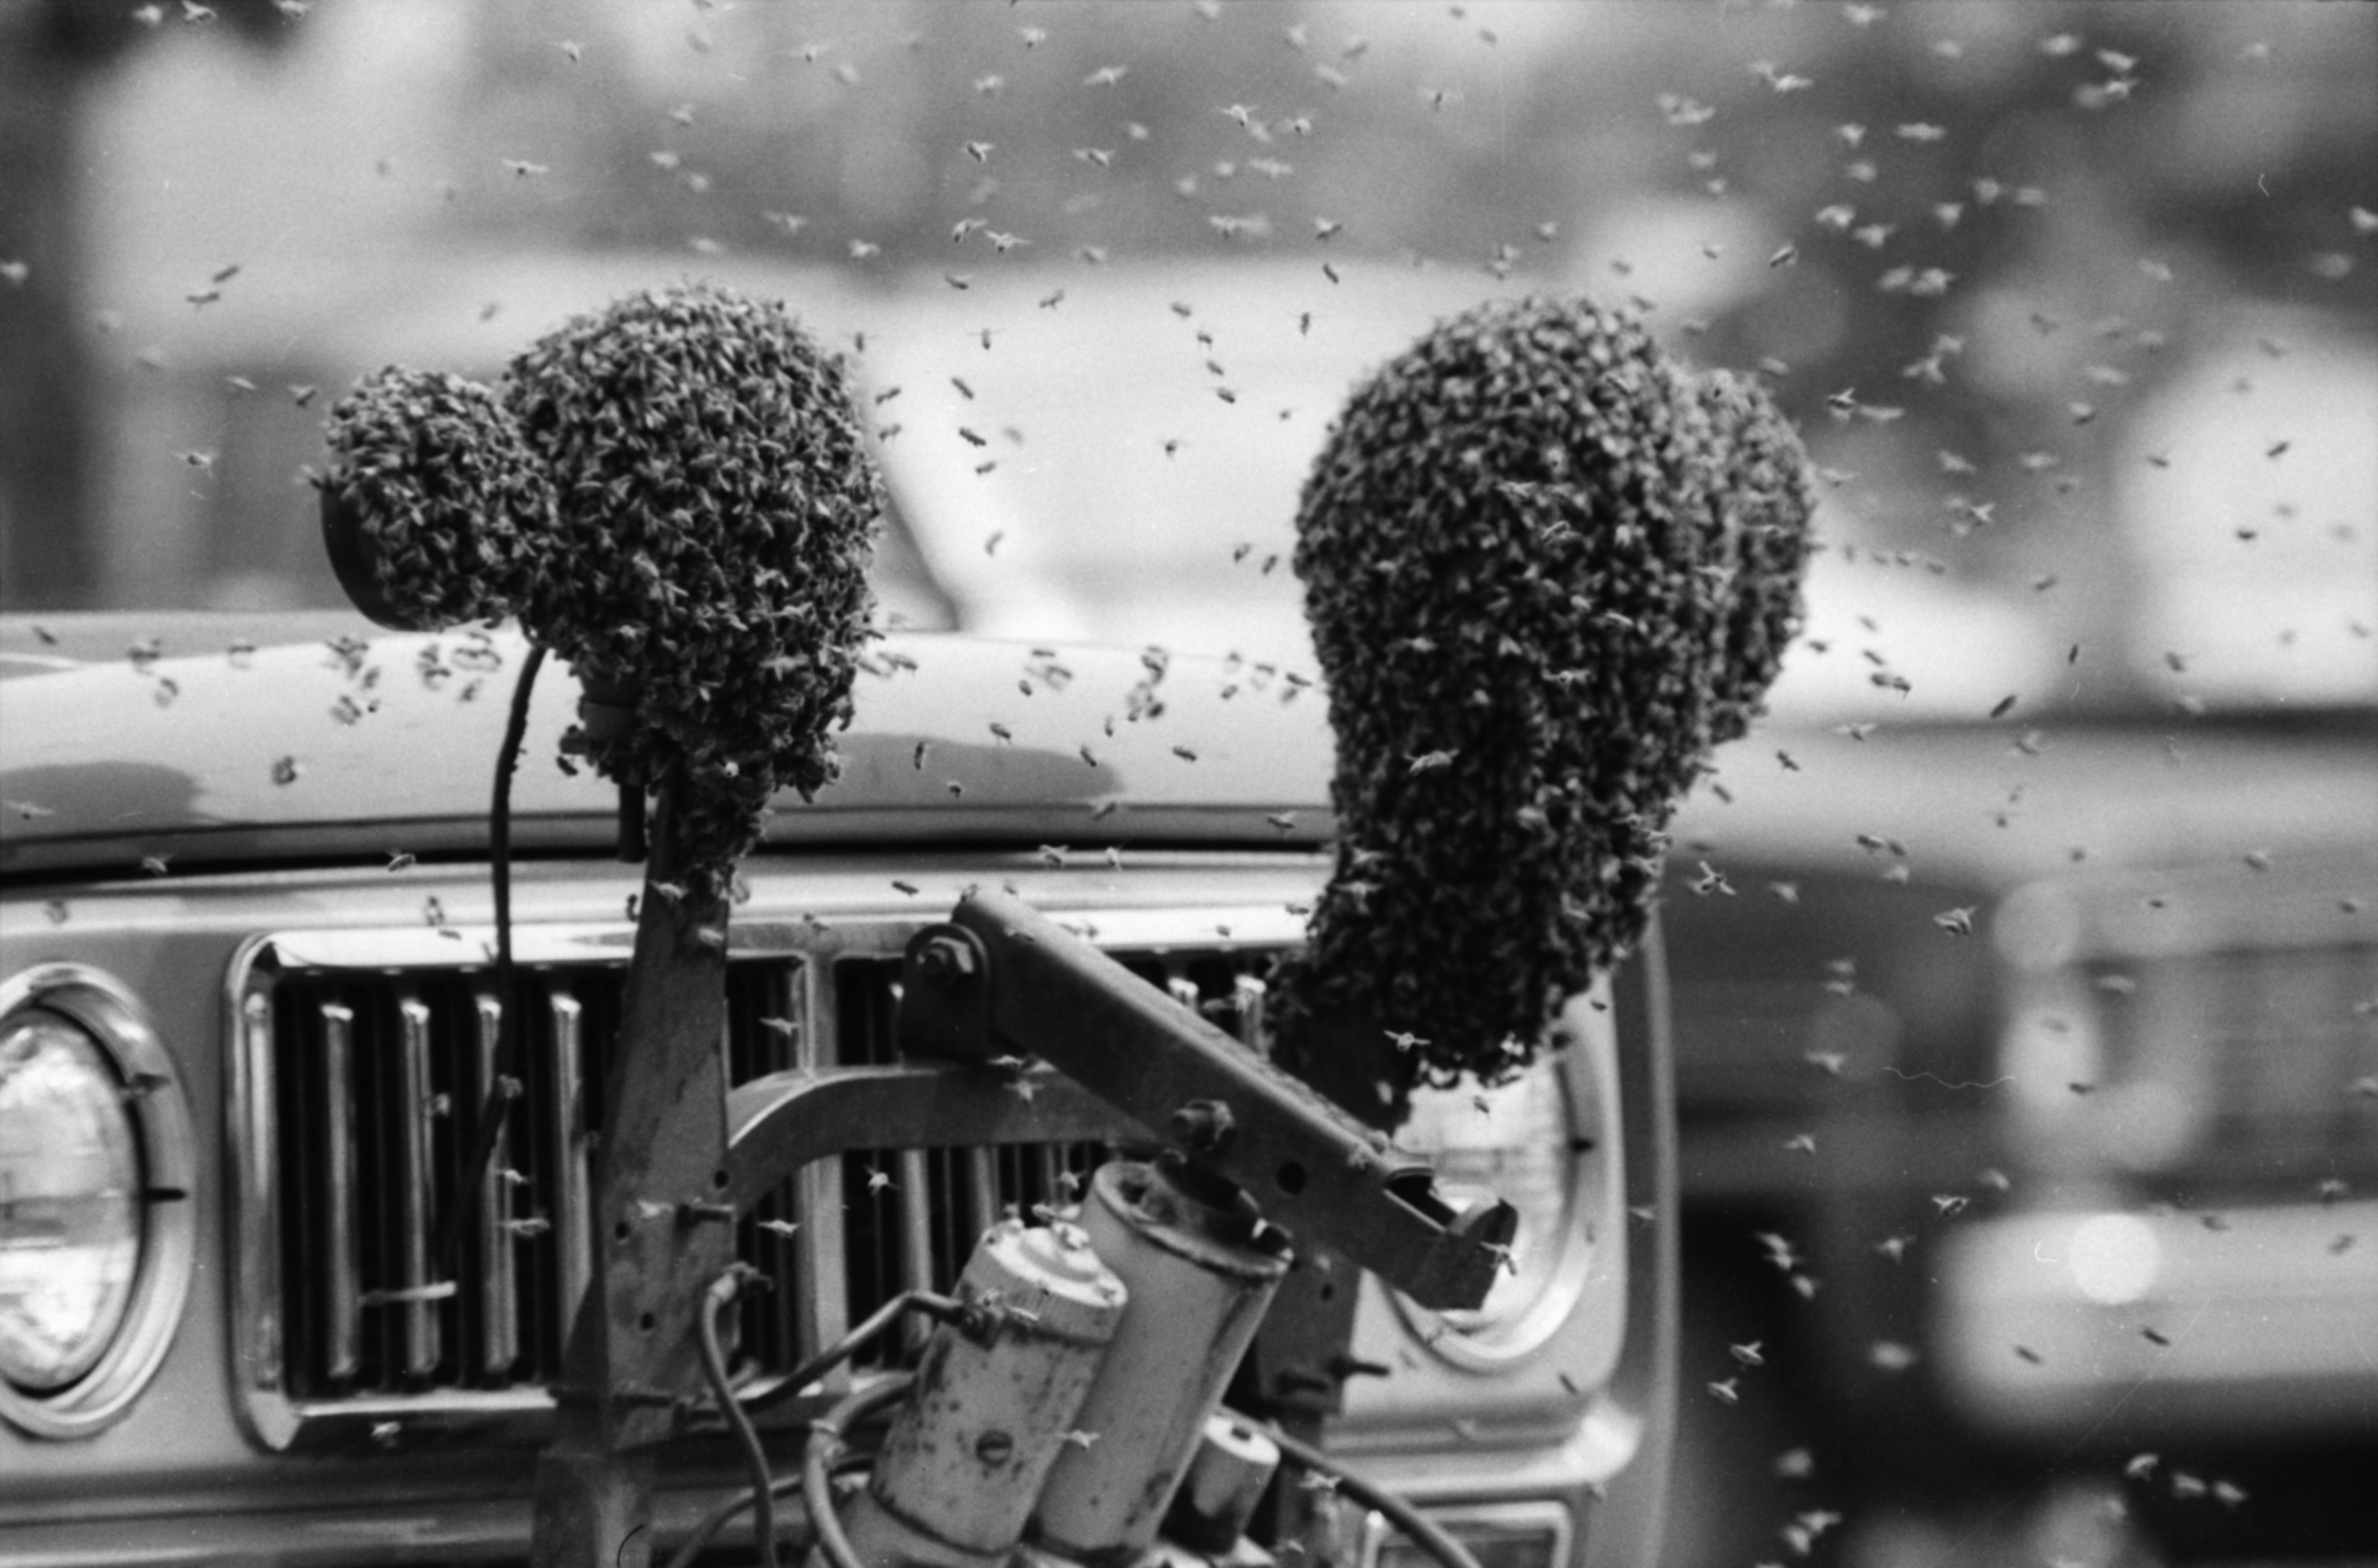 Bees Swarm an Ann Arbor News Truck, May 1980 image